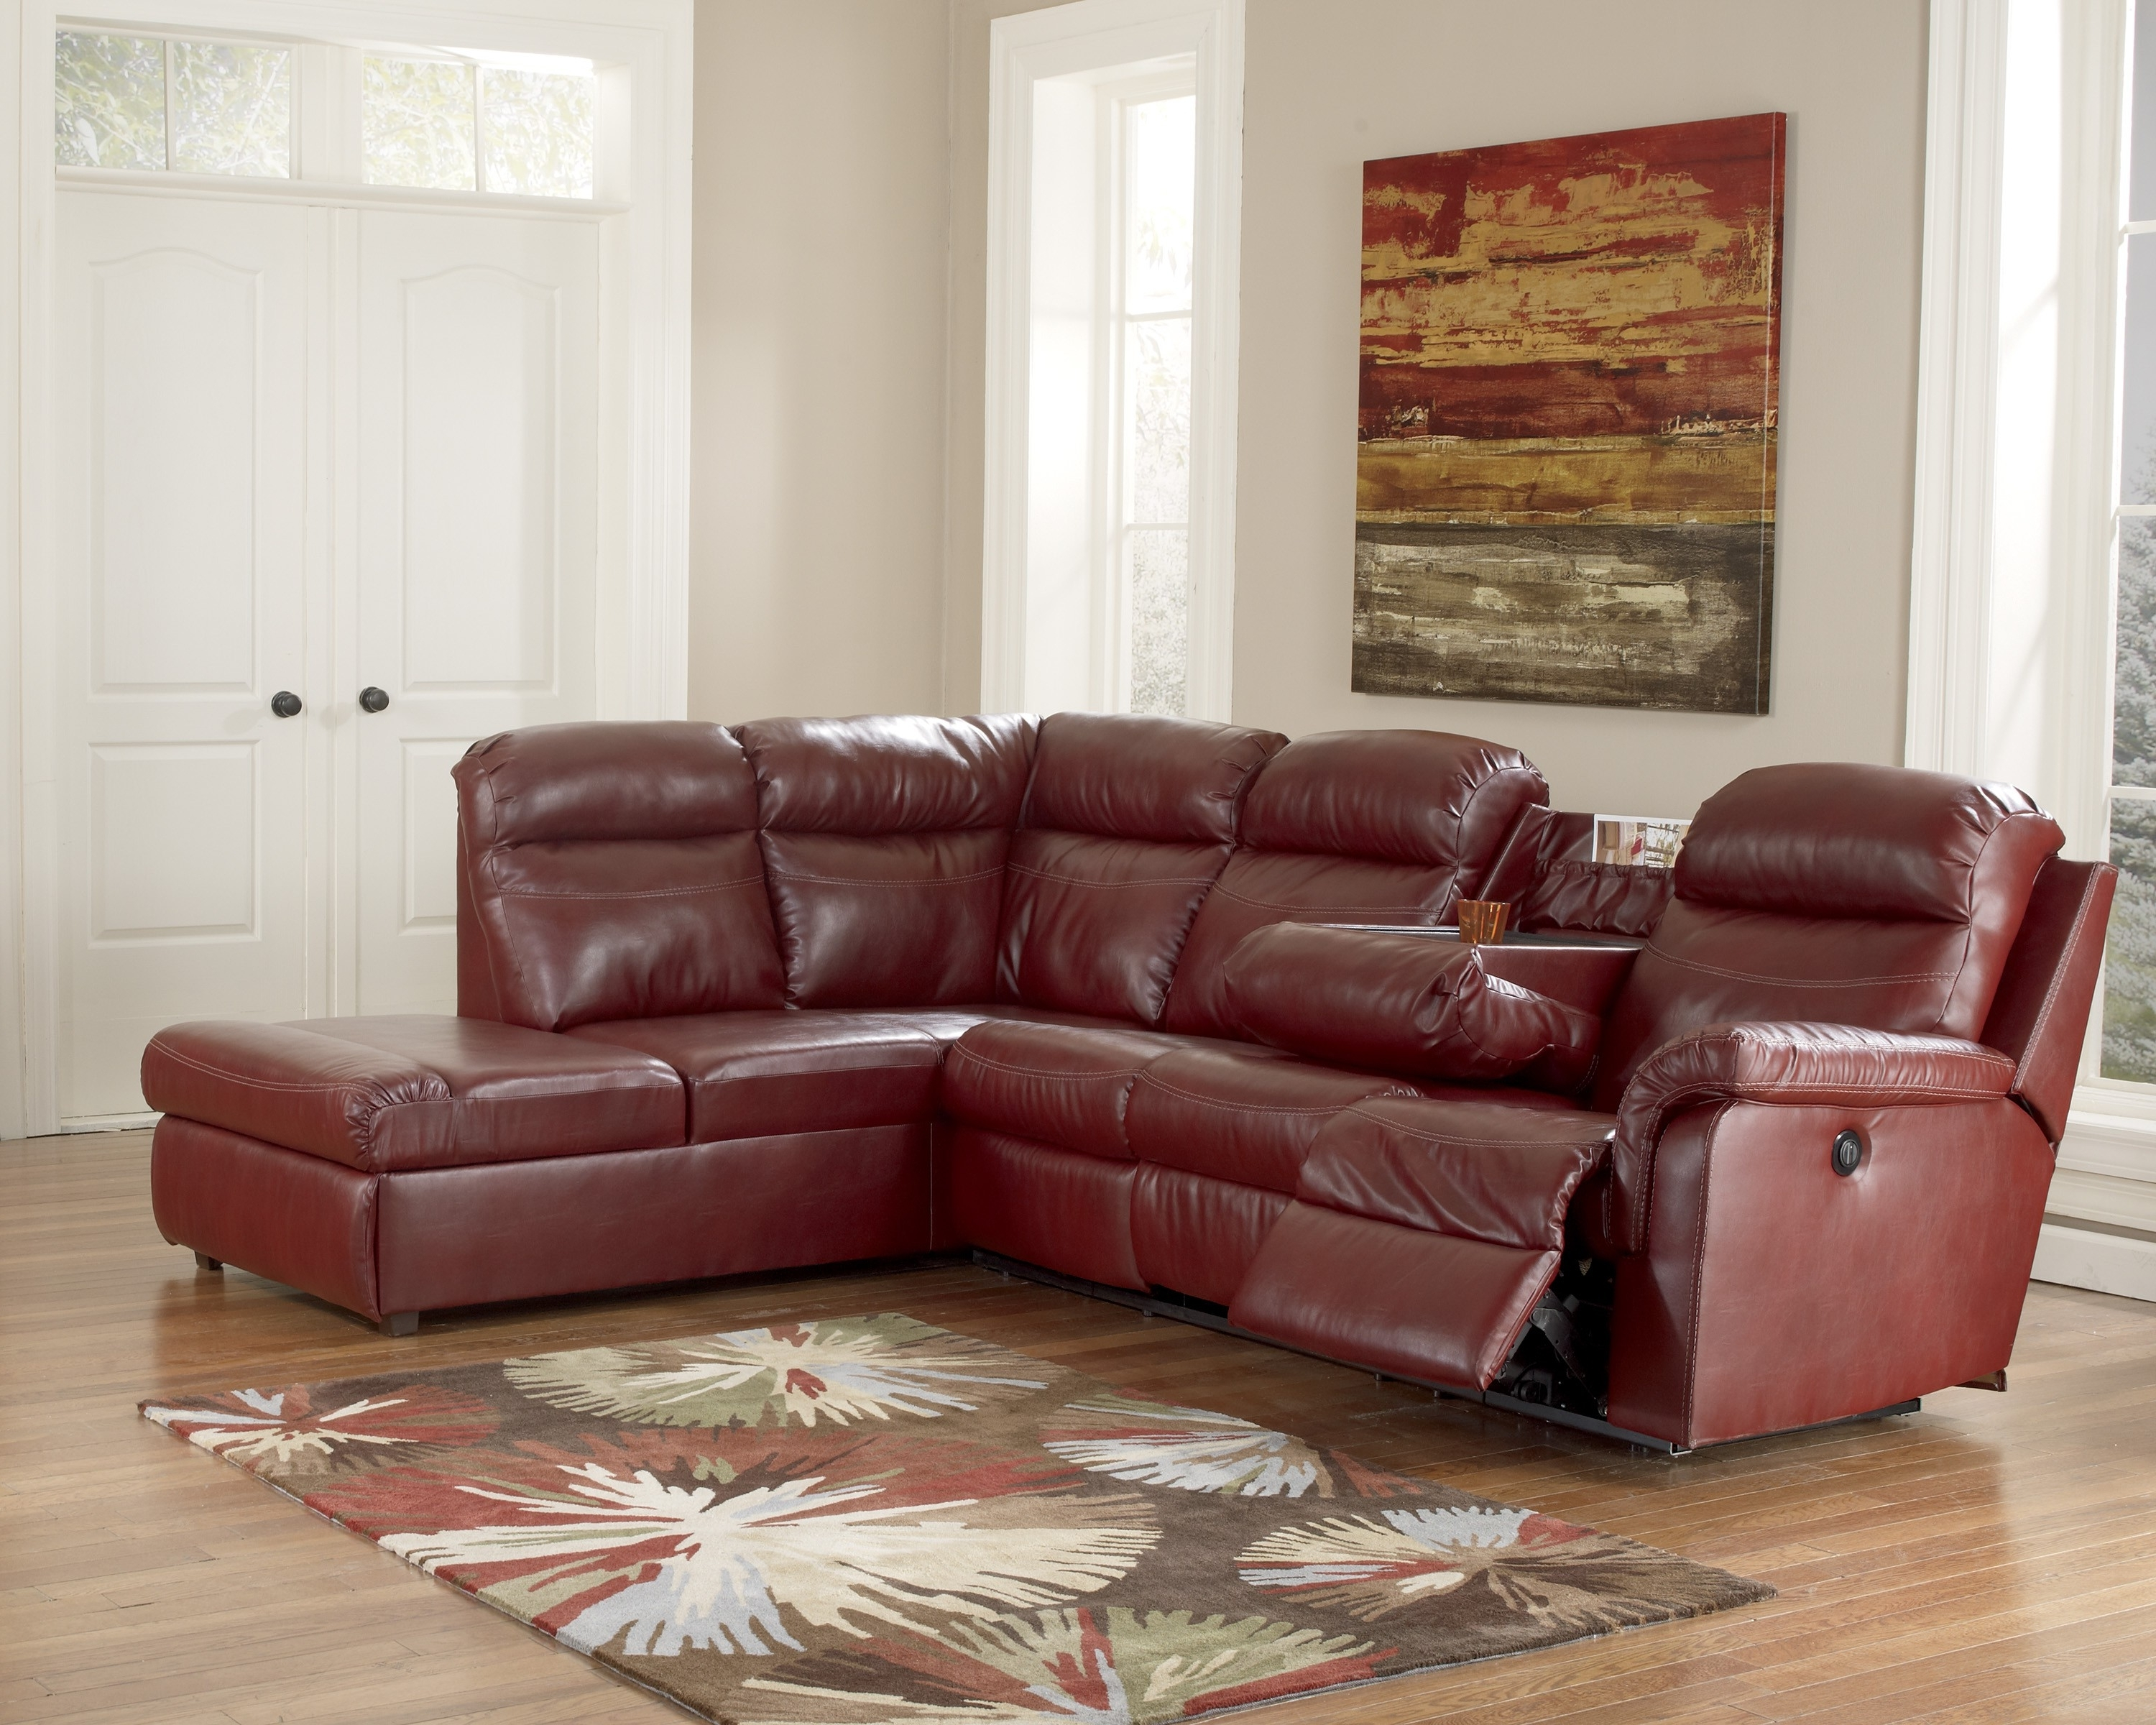 Beautiful Leather Sectional With Chaise And Recliner Gallery Throughout Most Popular Couches With Chaise And Recliner (View 1 of 15)